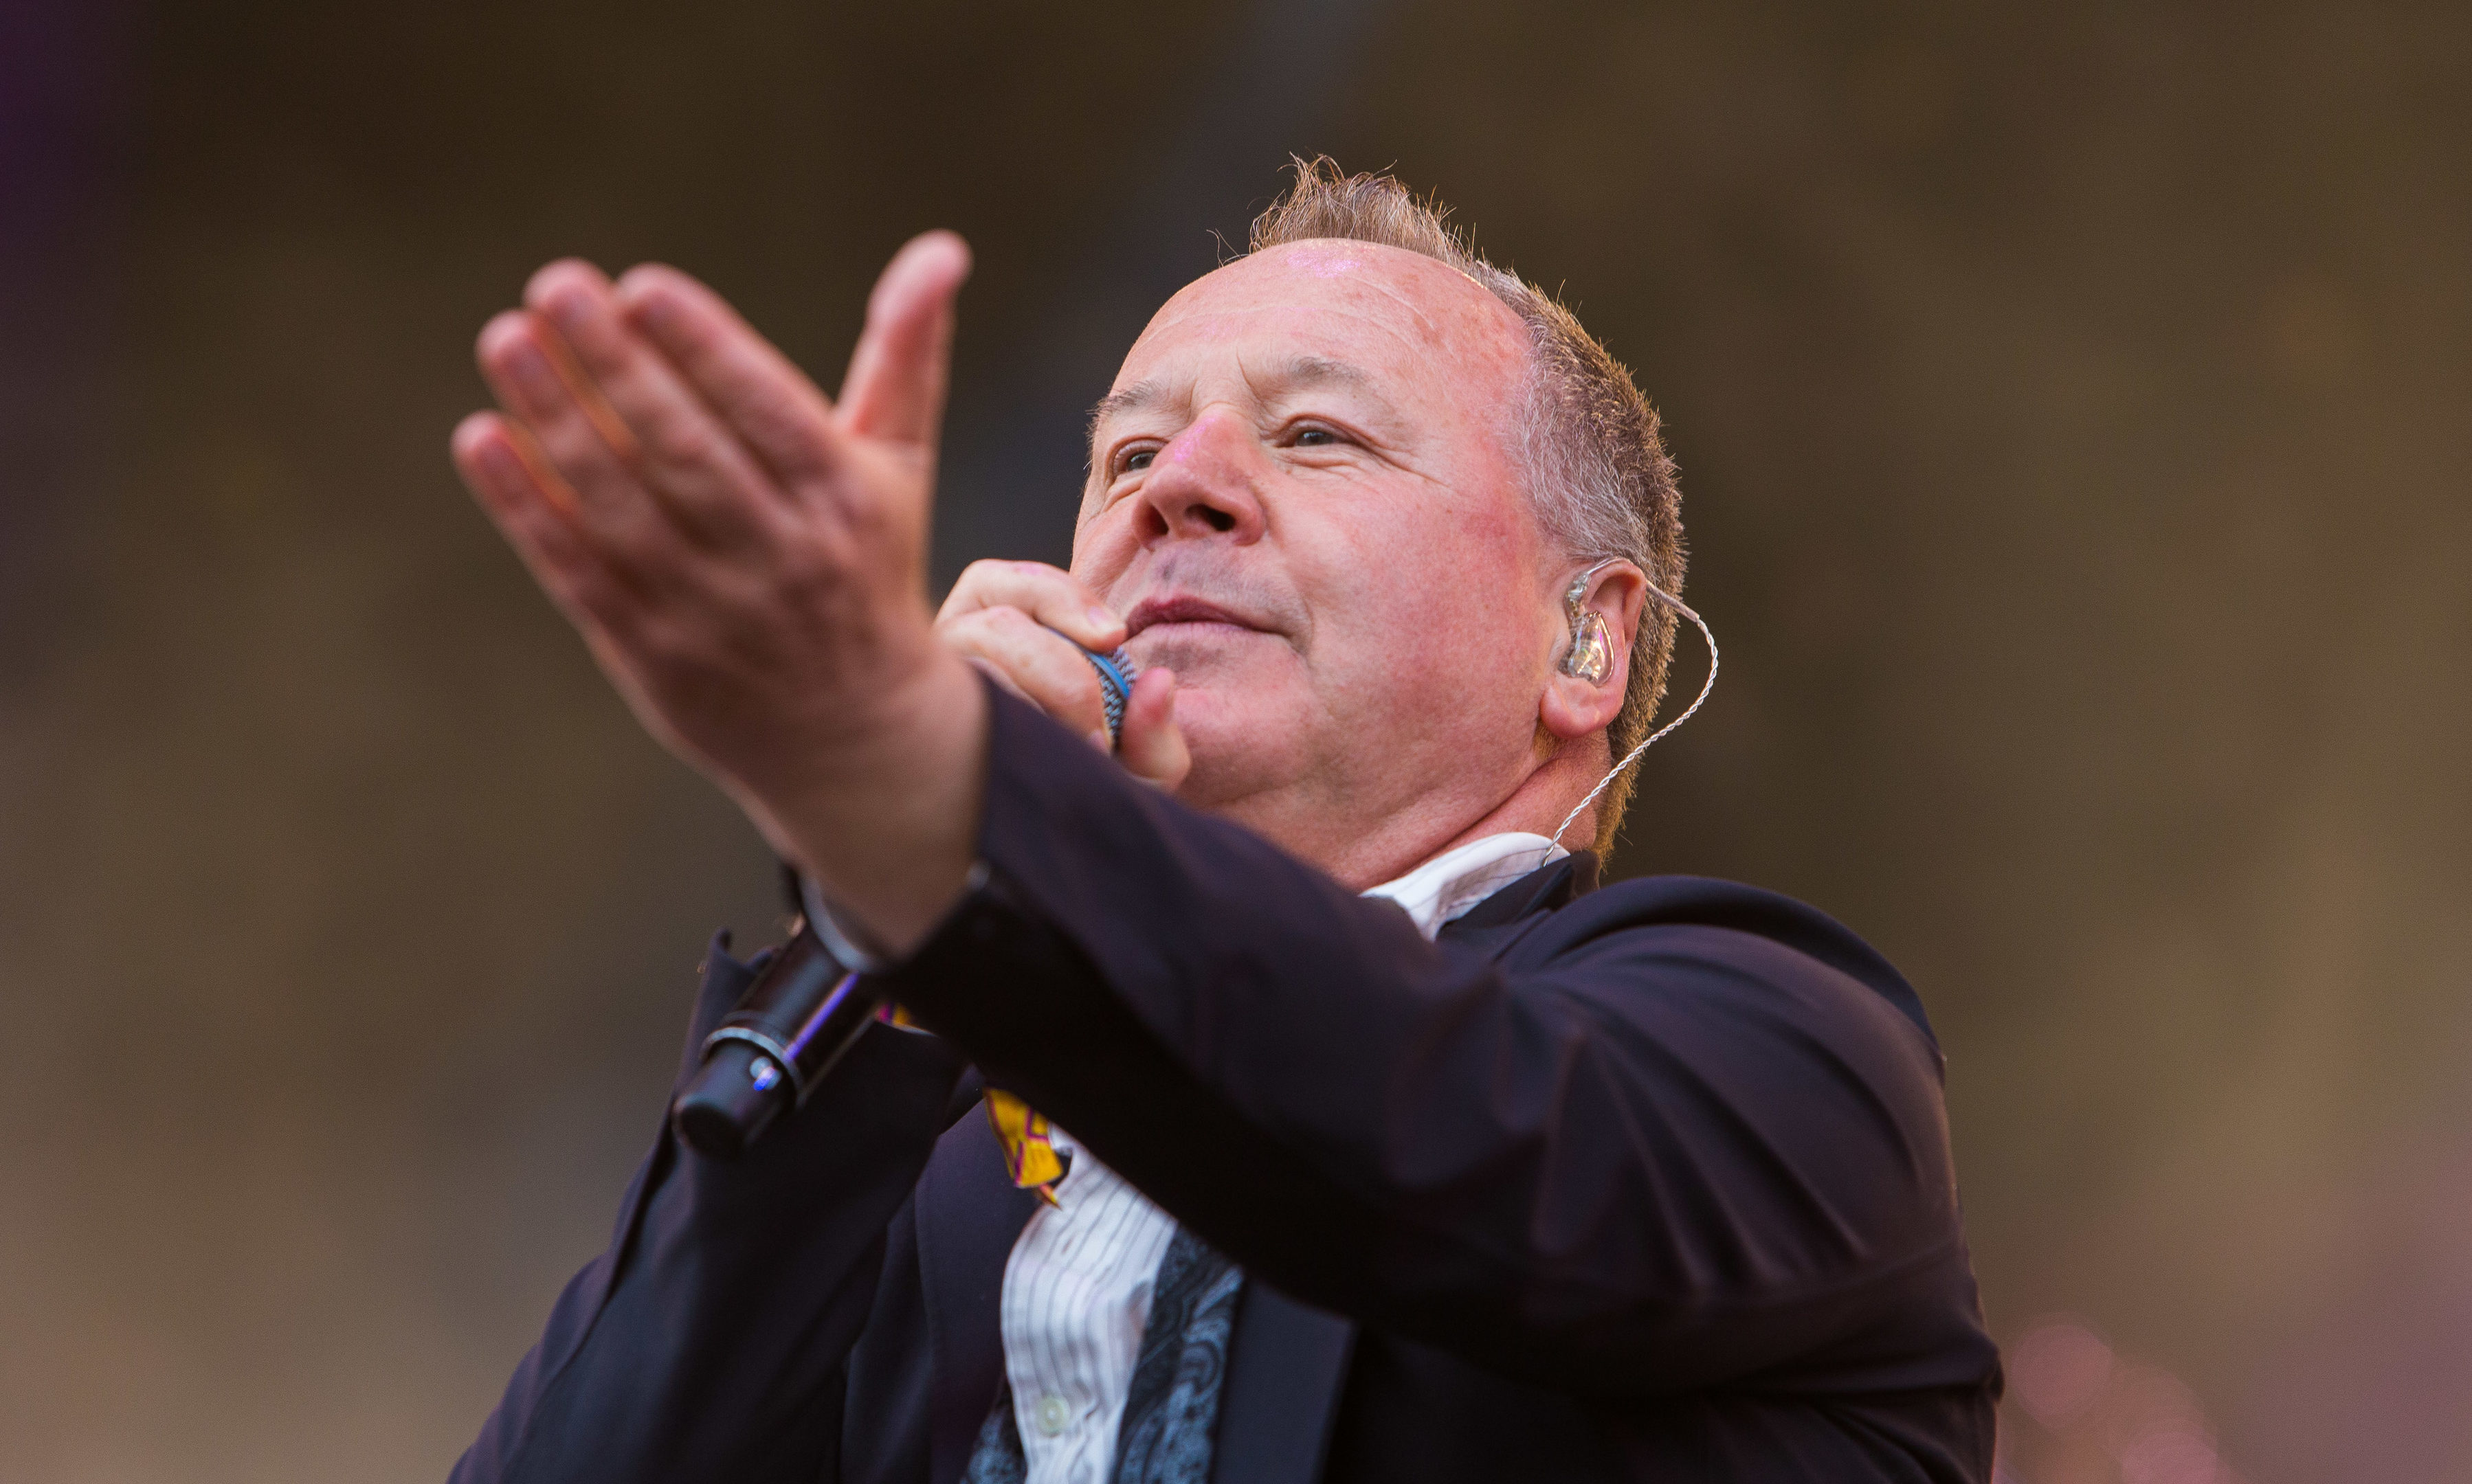 Simple Minds are among the big names at the BBC's Biggest Weekend in Scone Palace